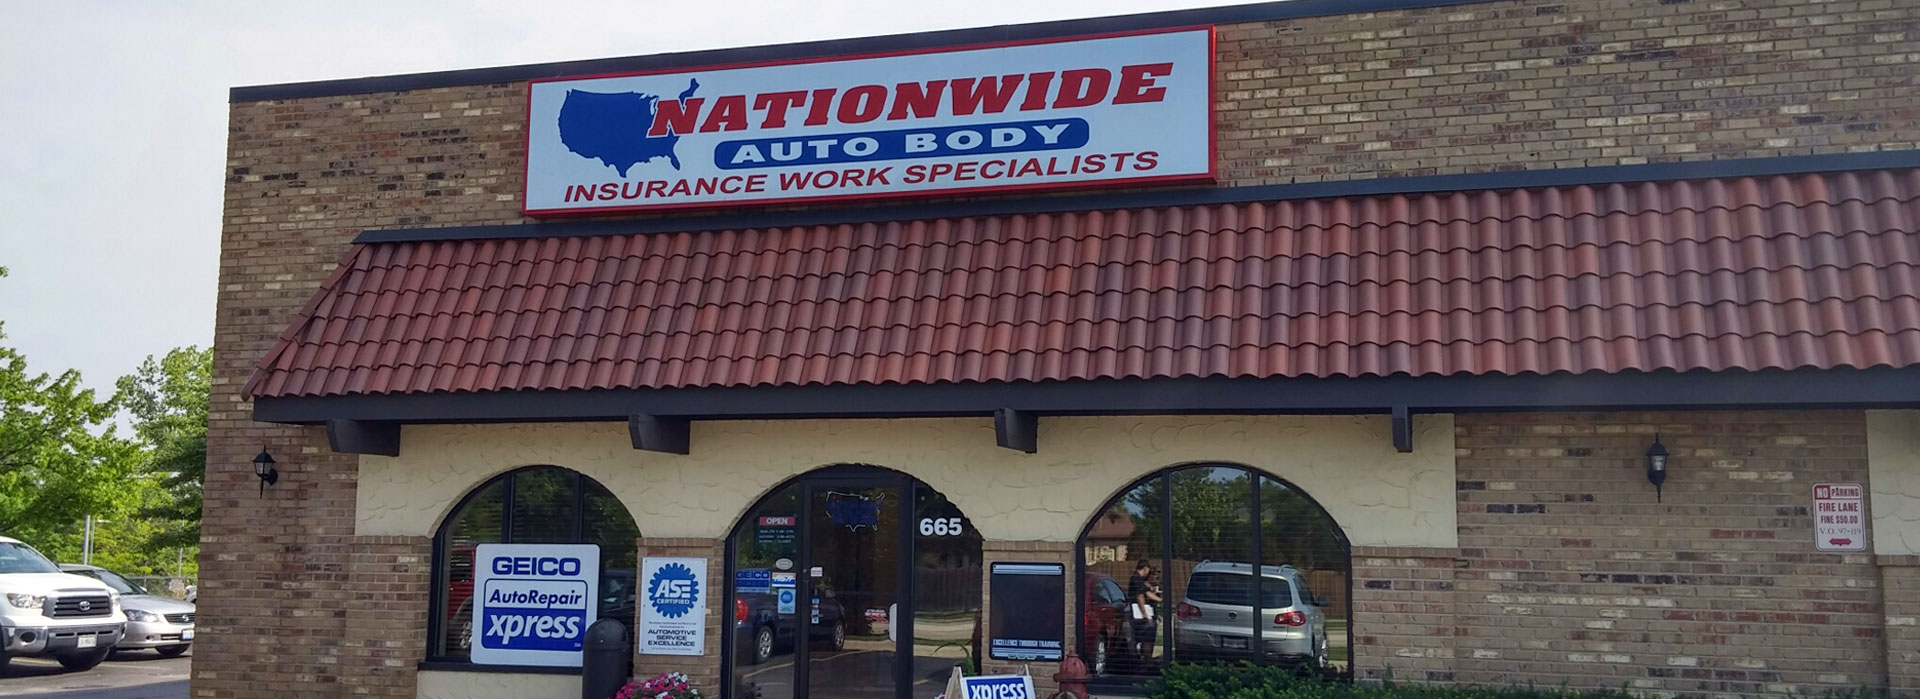 nationwide_bg